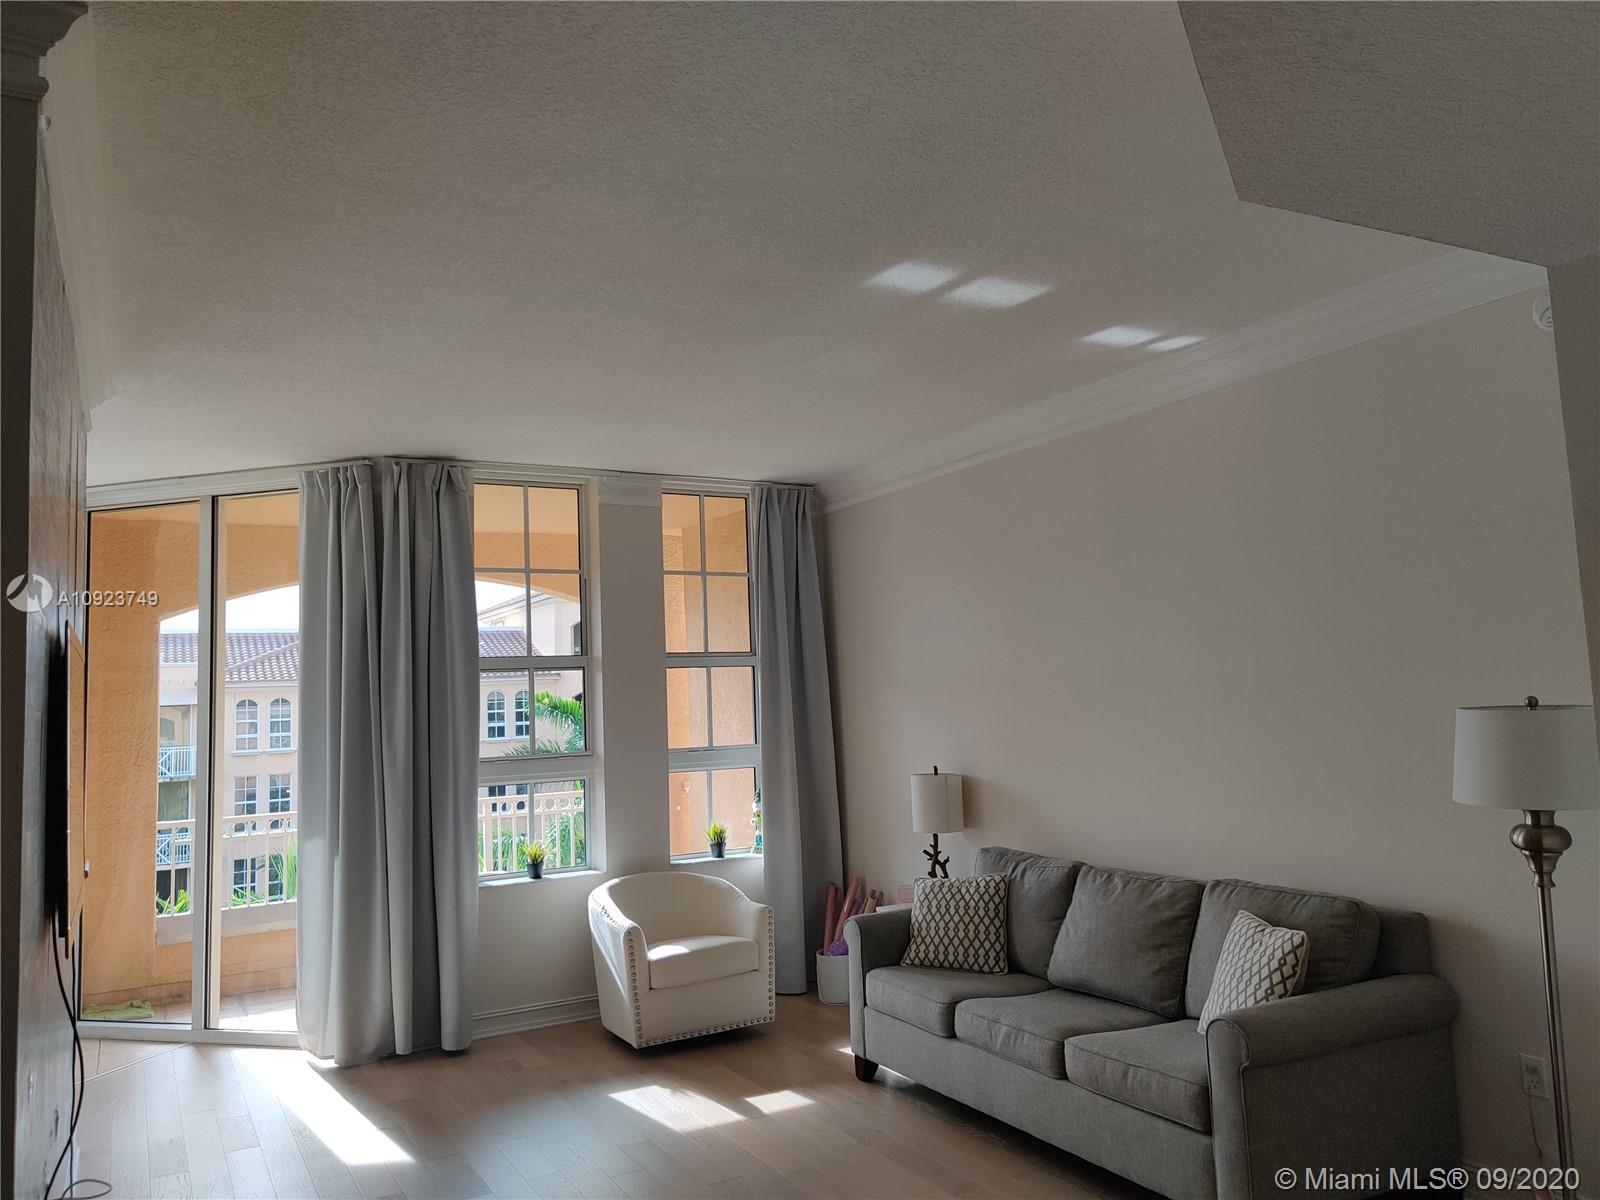 BEAUTIFUL apartment with fantastic view of the pool! Stainless steel appliances, granite countertops